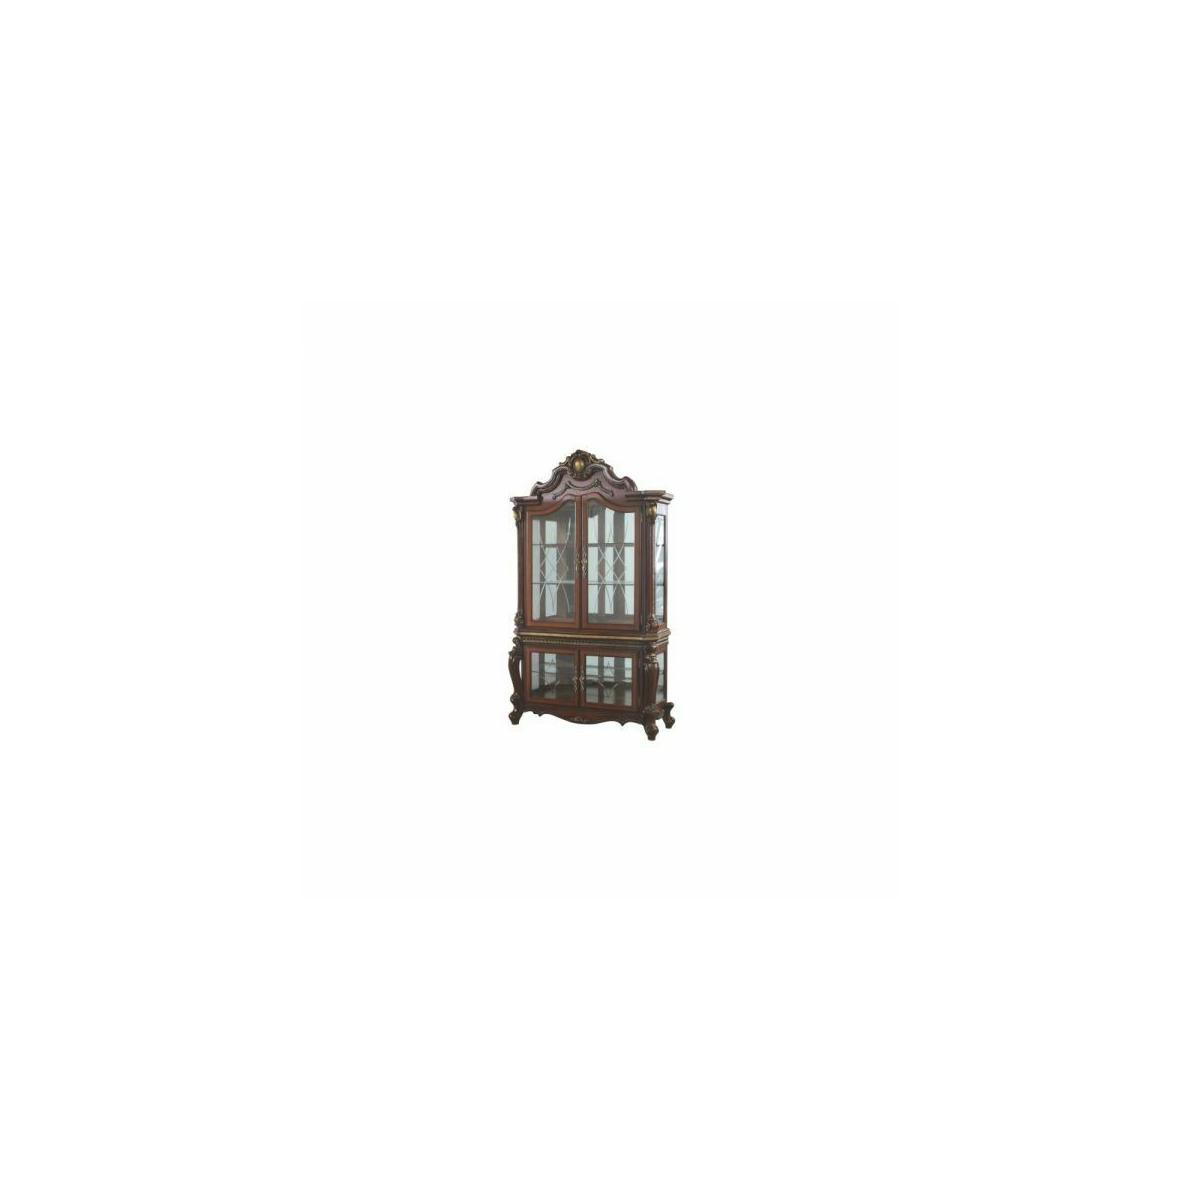 ACME Picardy Curio Cabinet - 68229 - Traditional, Vintage - Wood (Rbw), Wood Veneer (Cherry), Poly-Resin (Fiberglass), Glass, Mirror - Cherry Oak